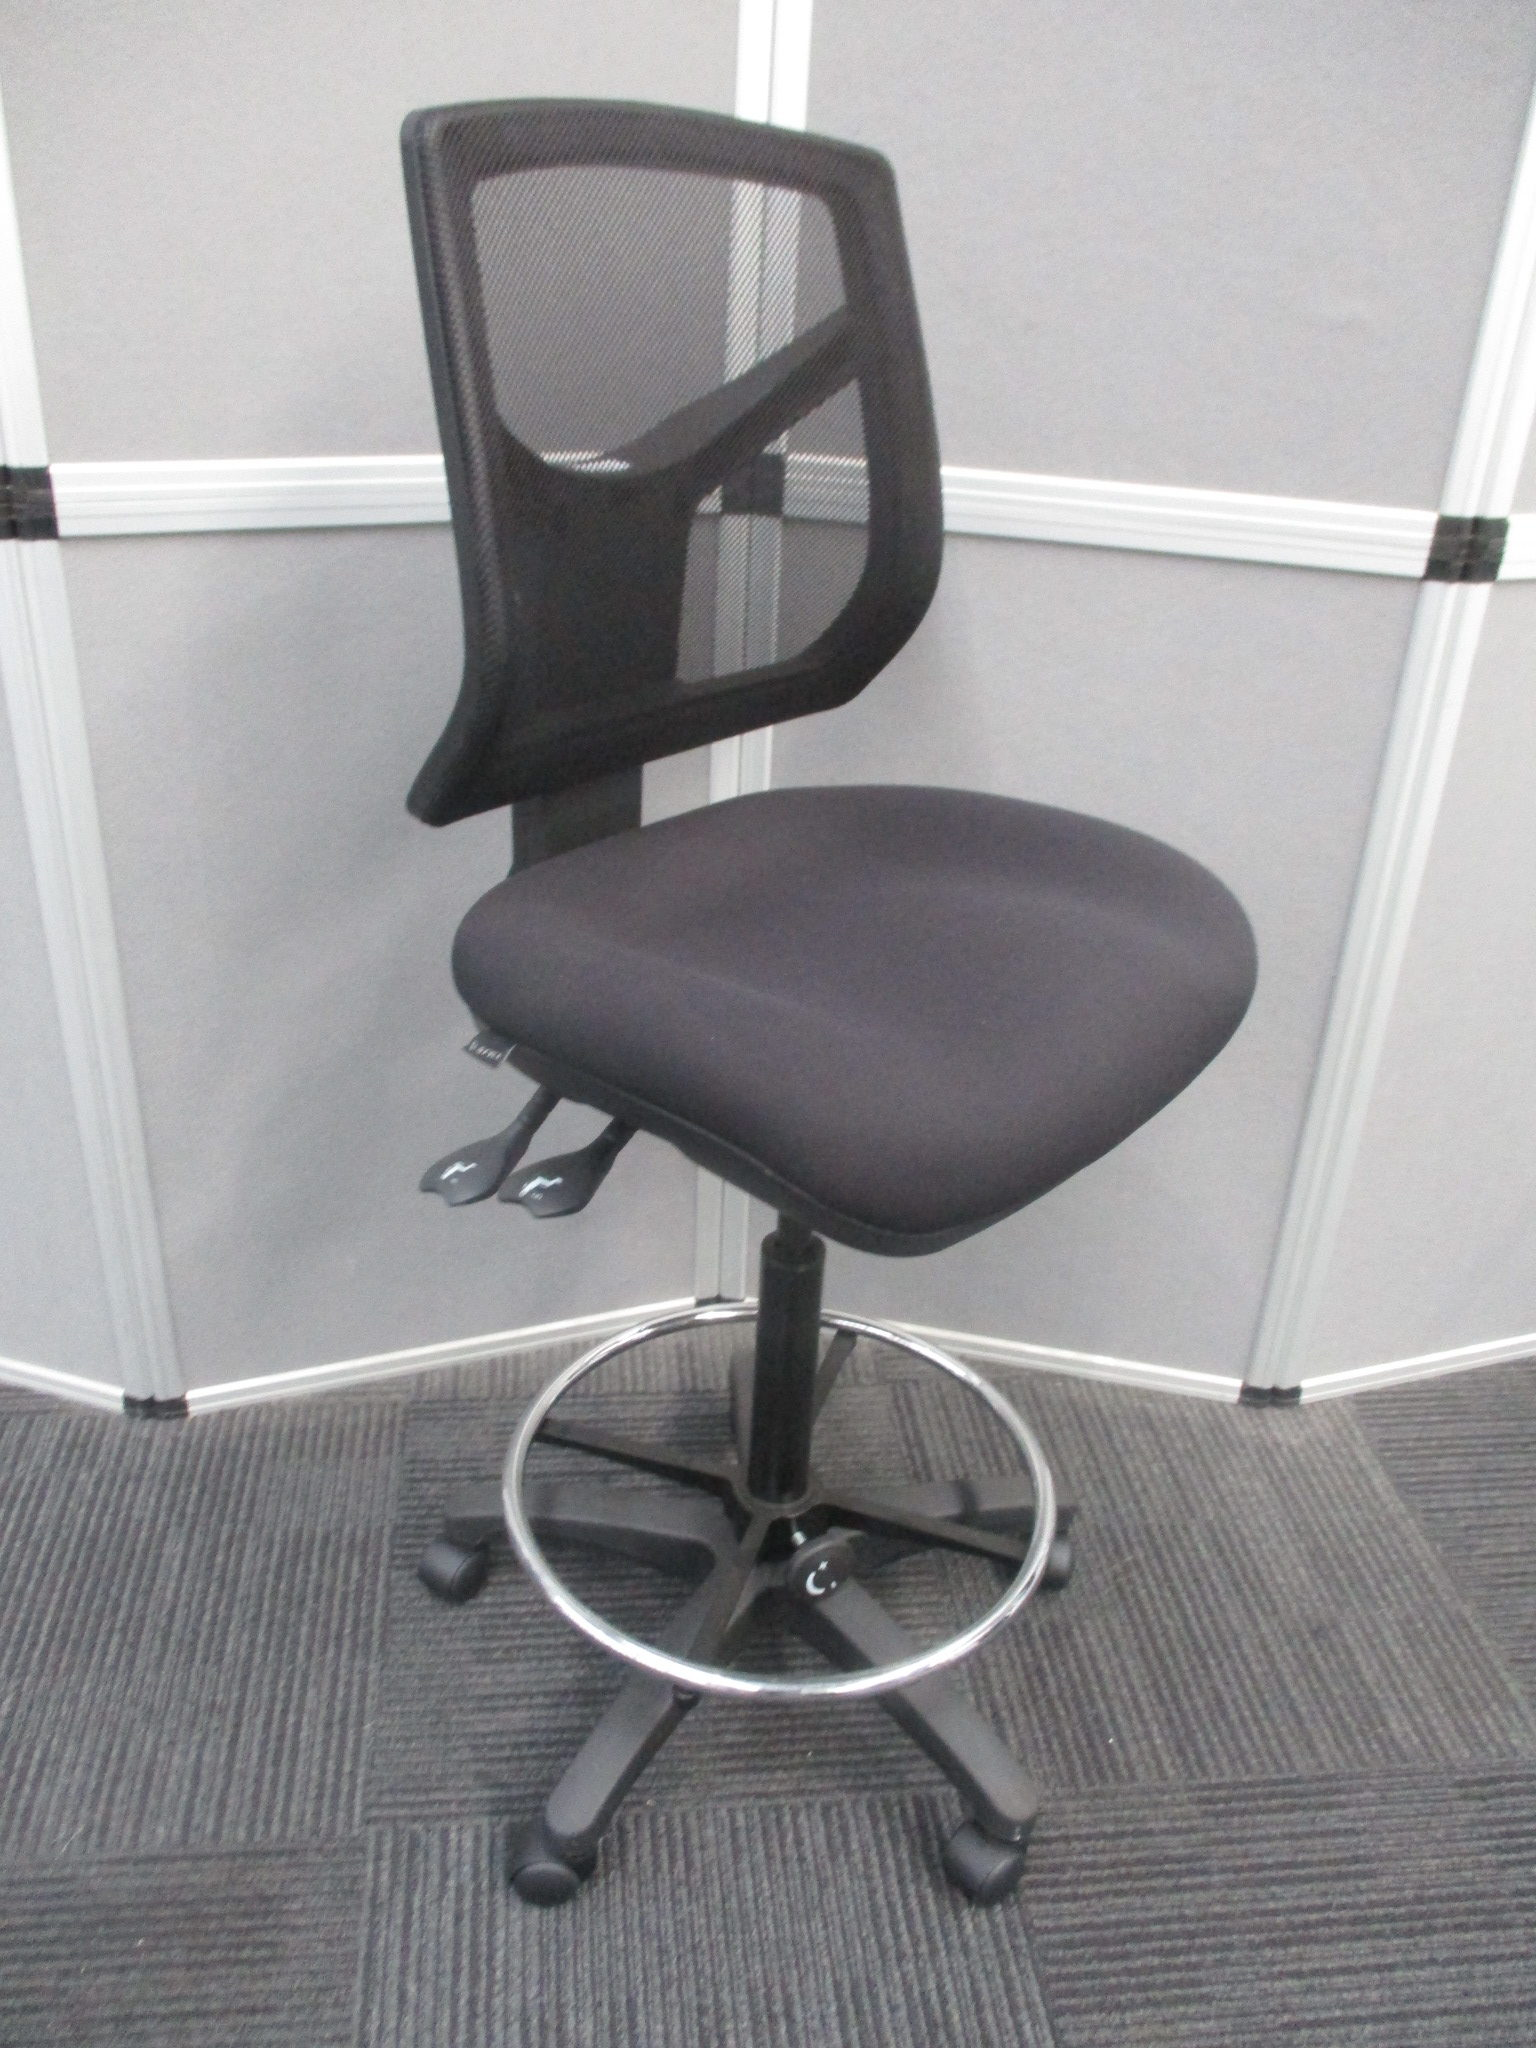 New Rio LB Drafting Chairs $375